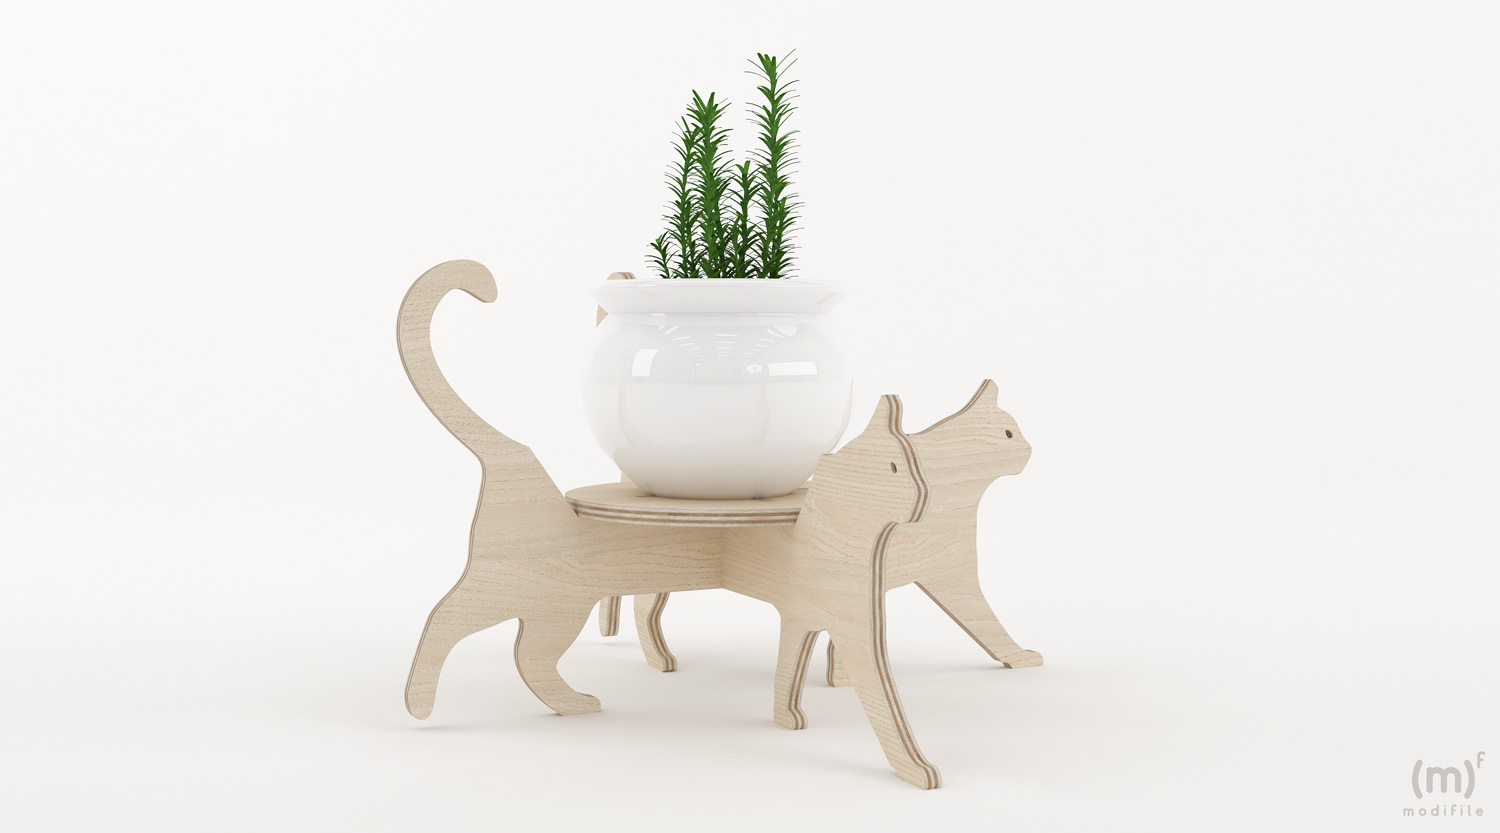 Cat Flowerpot wooden furniture